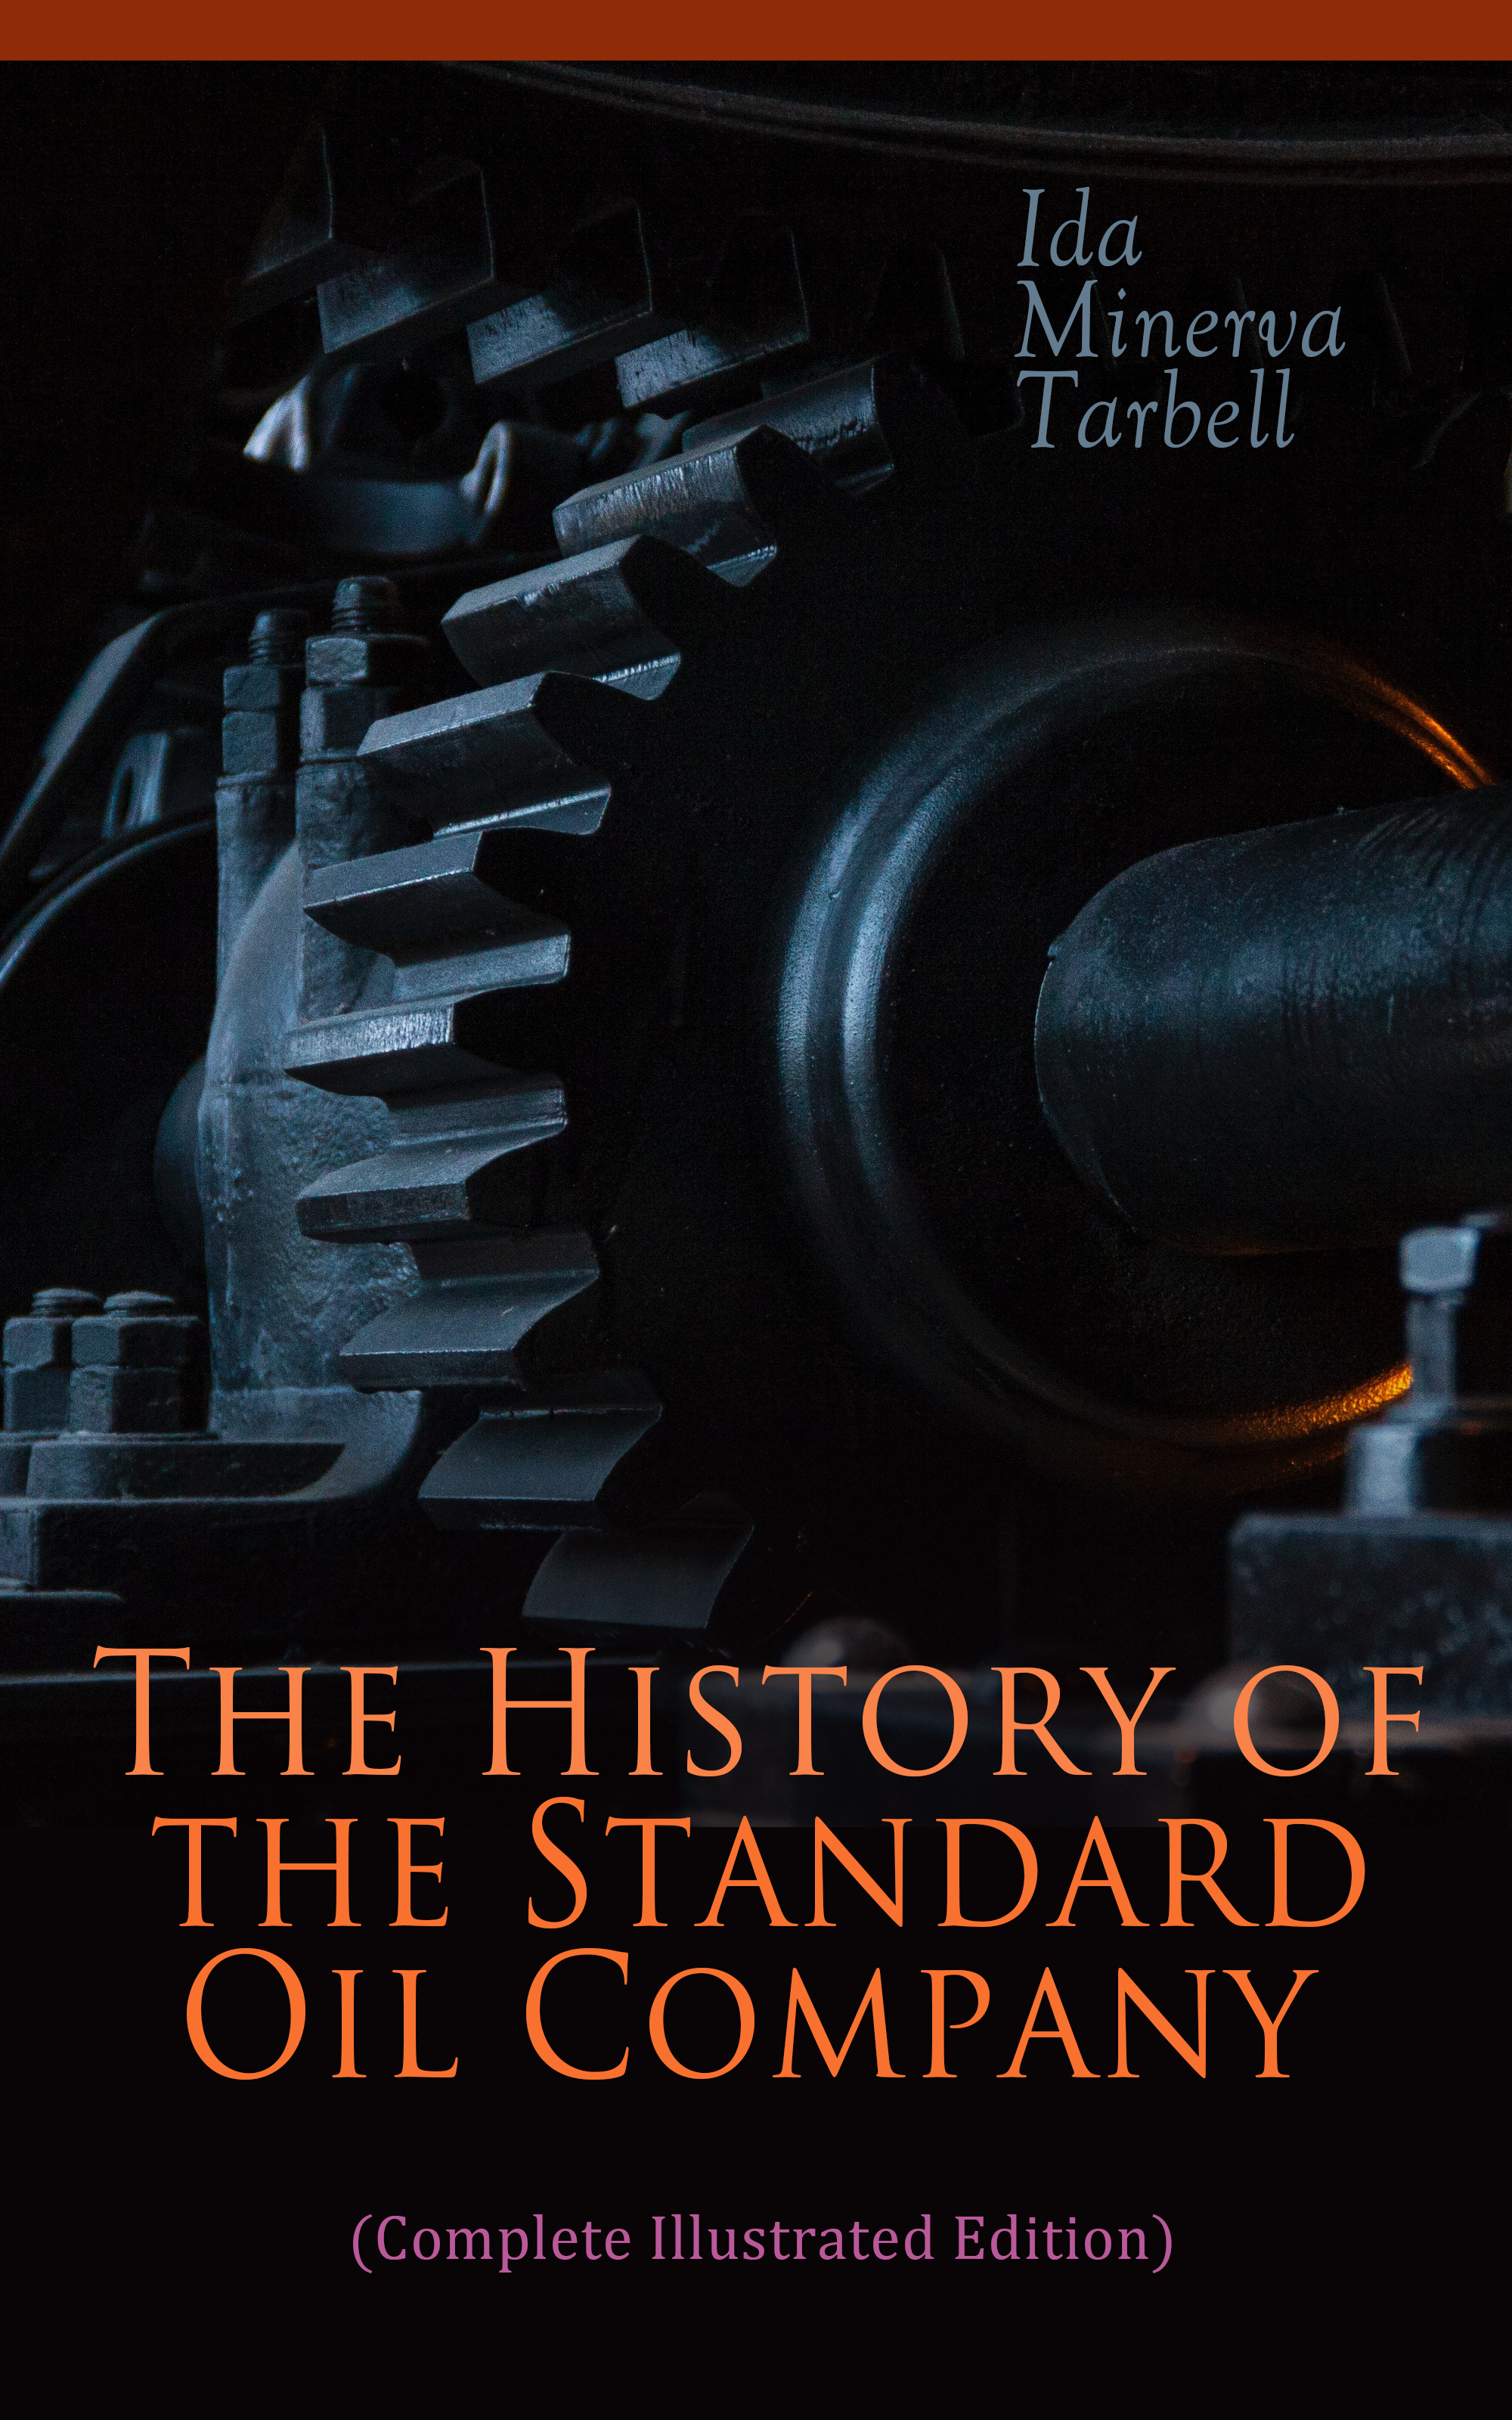 Ida Minerva Tarbell The History of the Standard Oil Company (Complete Illustrated Edition) london the illustrated history